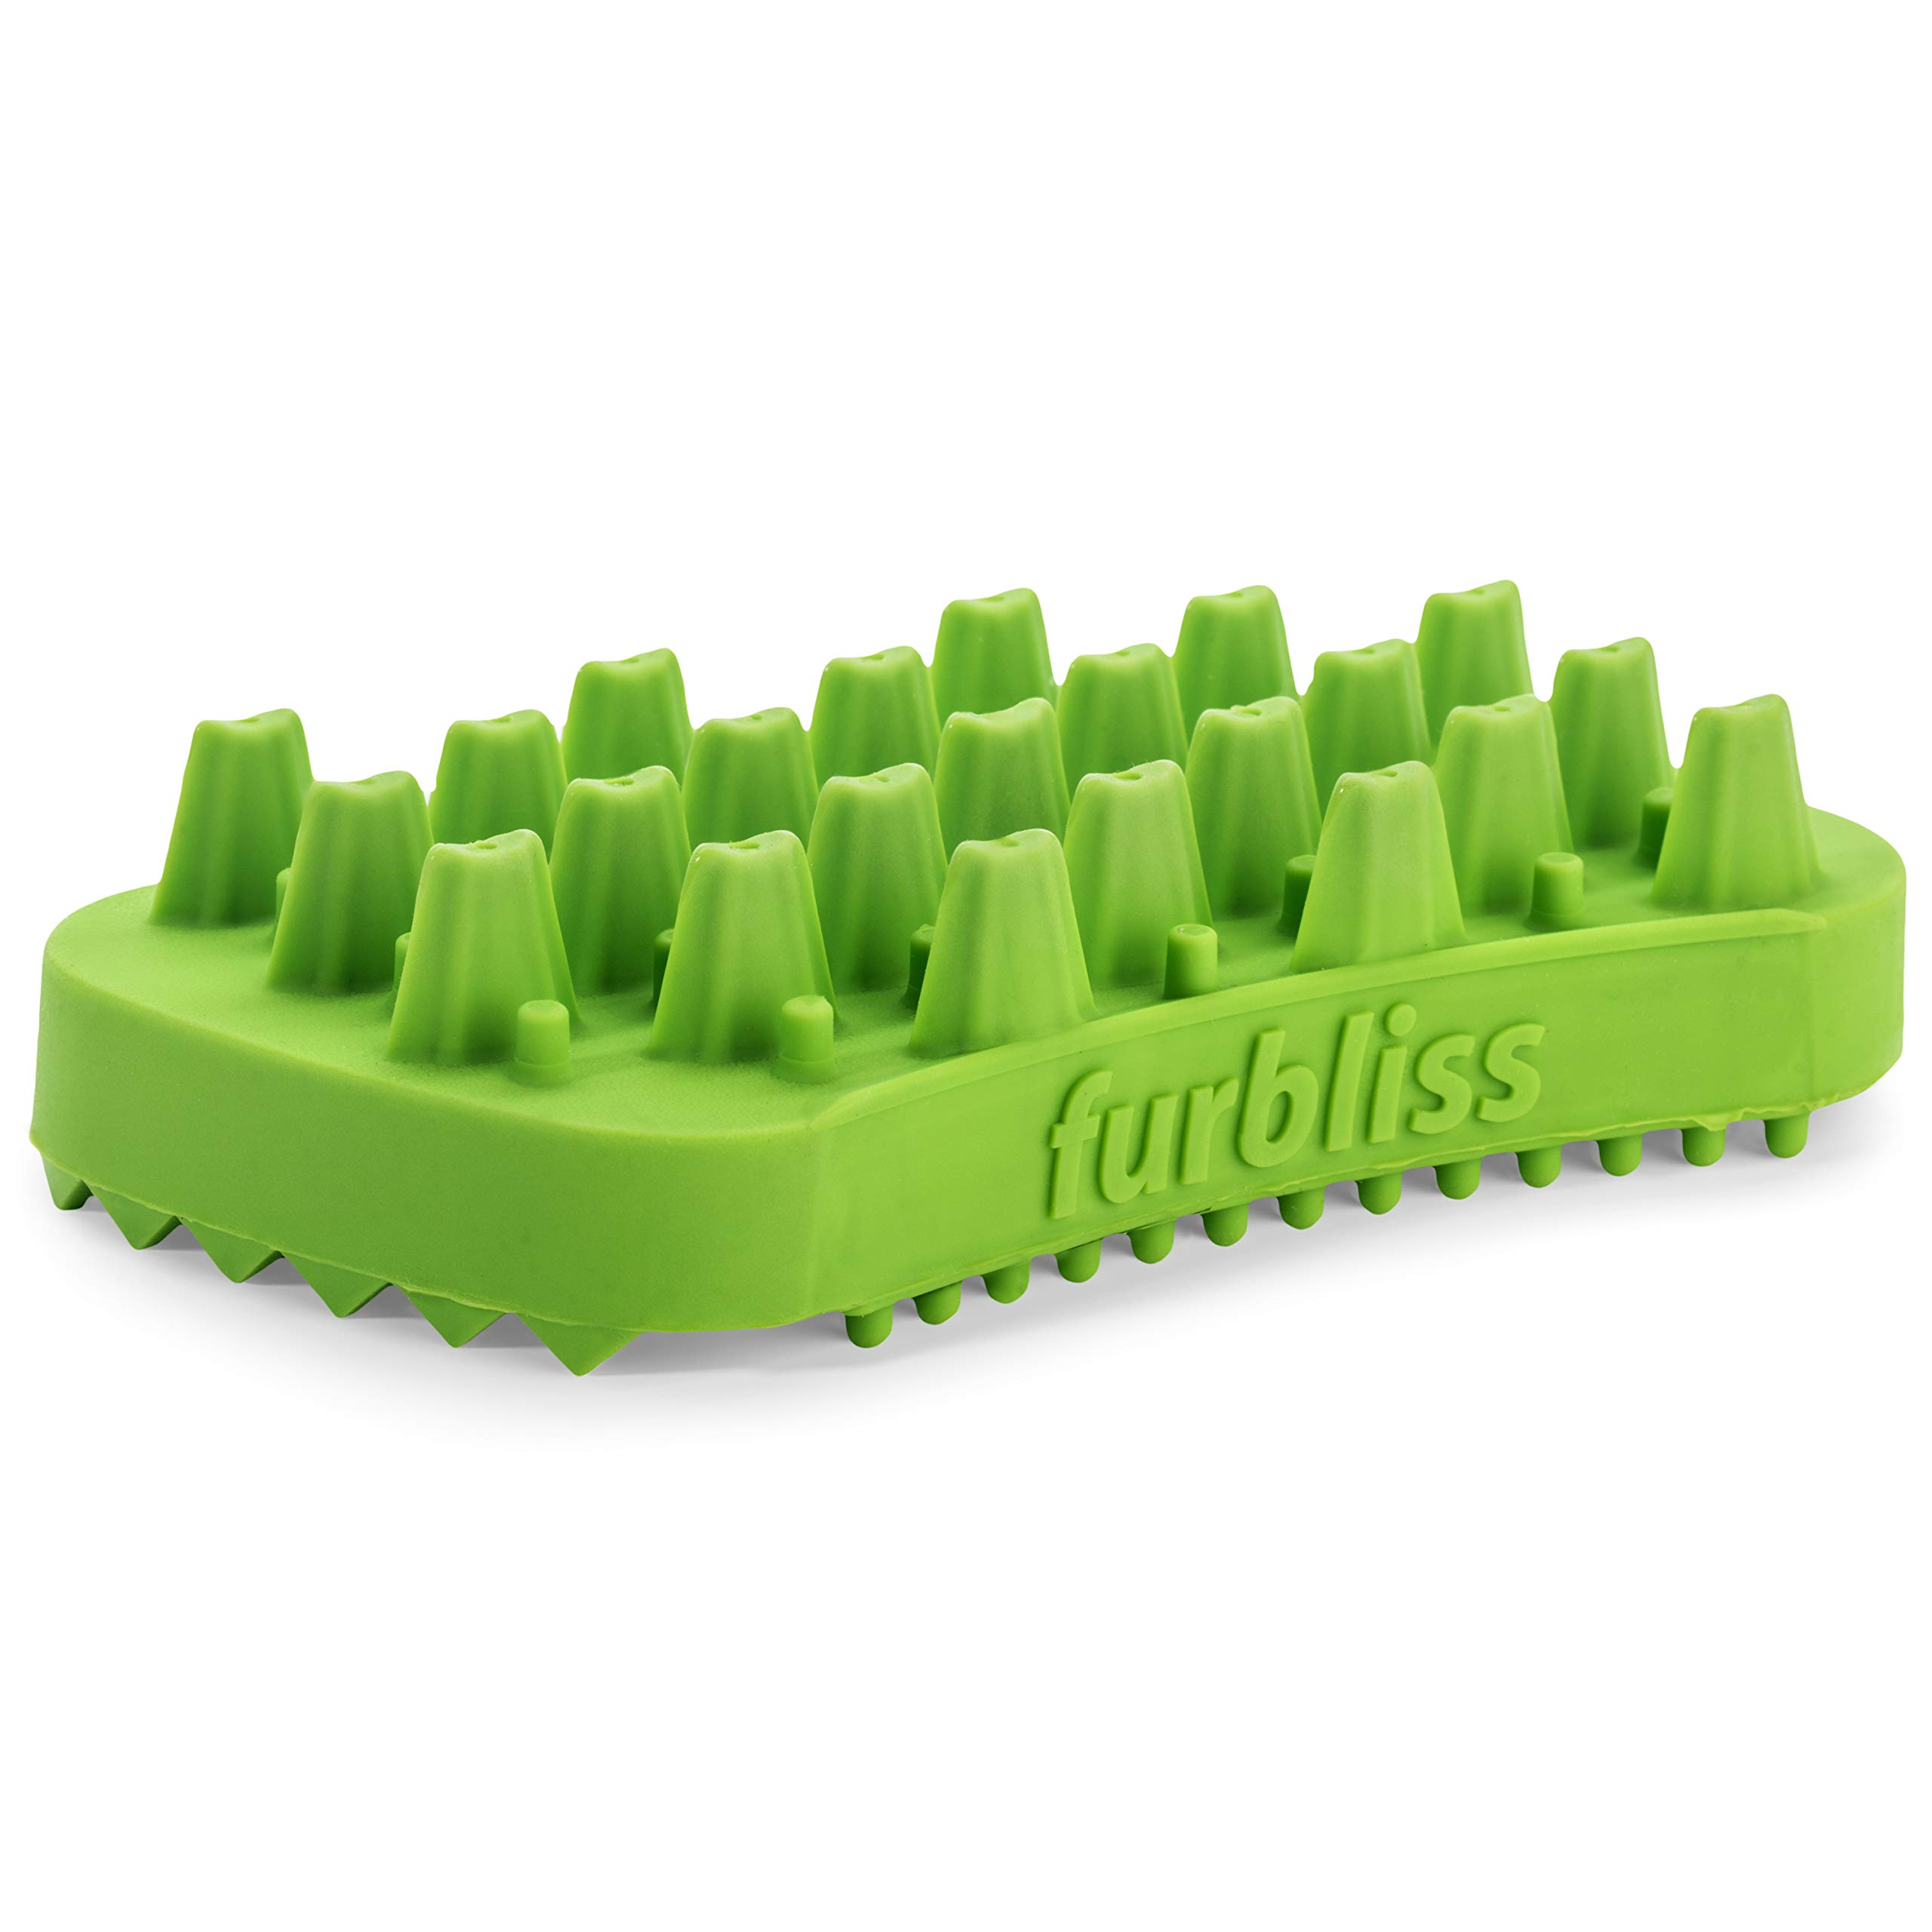 Furbliss Dog & Cat Brush for Small Pets with Long Hair, Non-Metal Grooming, Bathing Massaging and Deshedding Silicone Brush - Green